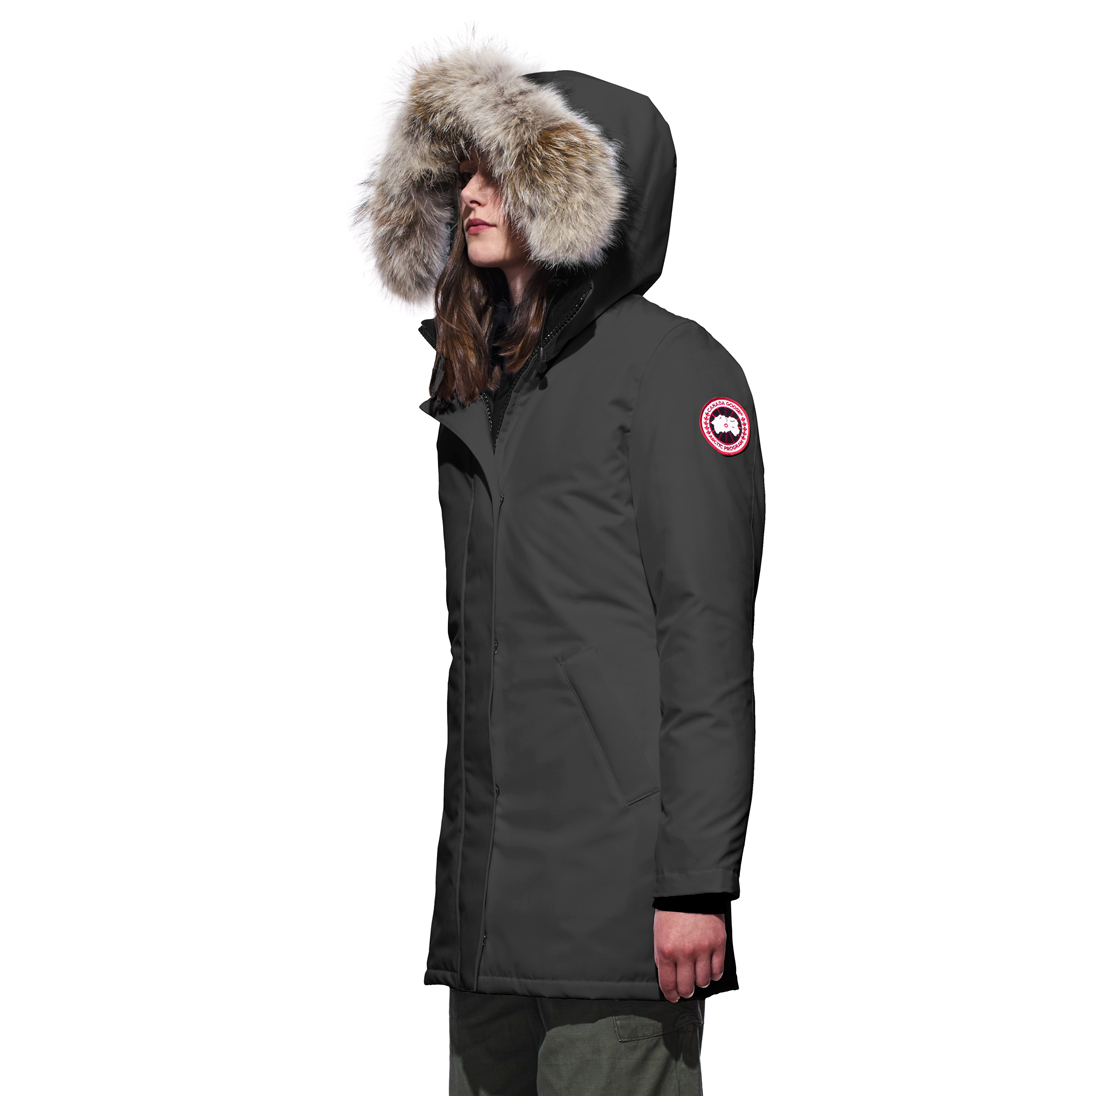 Canada Goose Jas Vrouwen Sale   Wiring Library